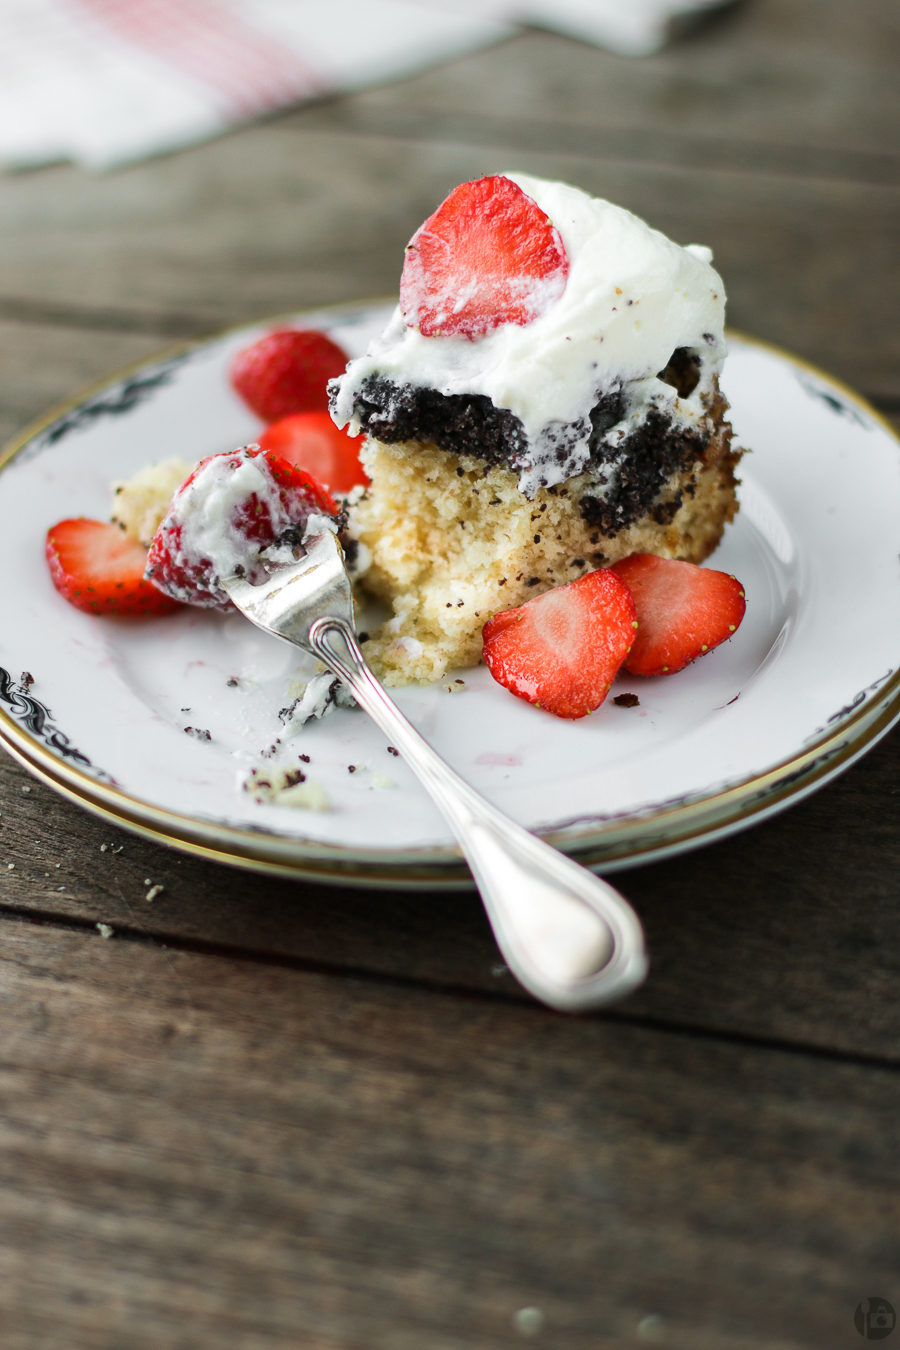 Upside Down Cake with Whipped Cream and Strawberries